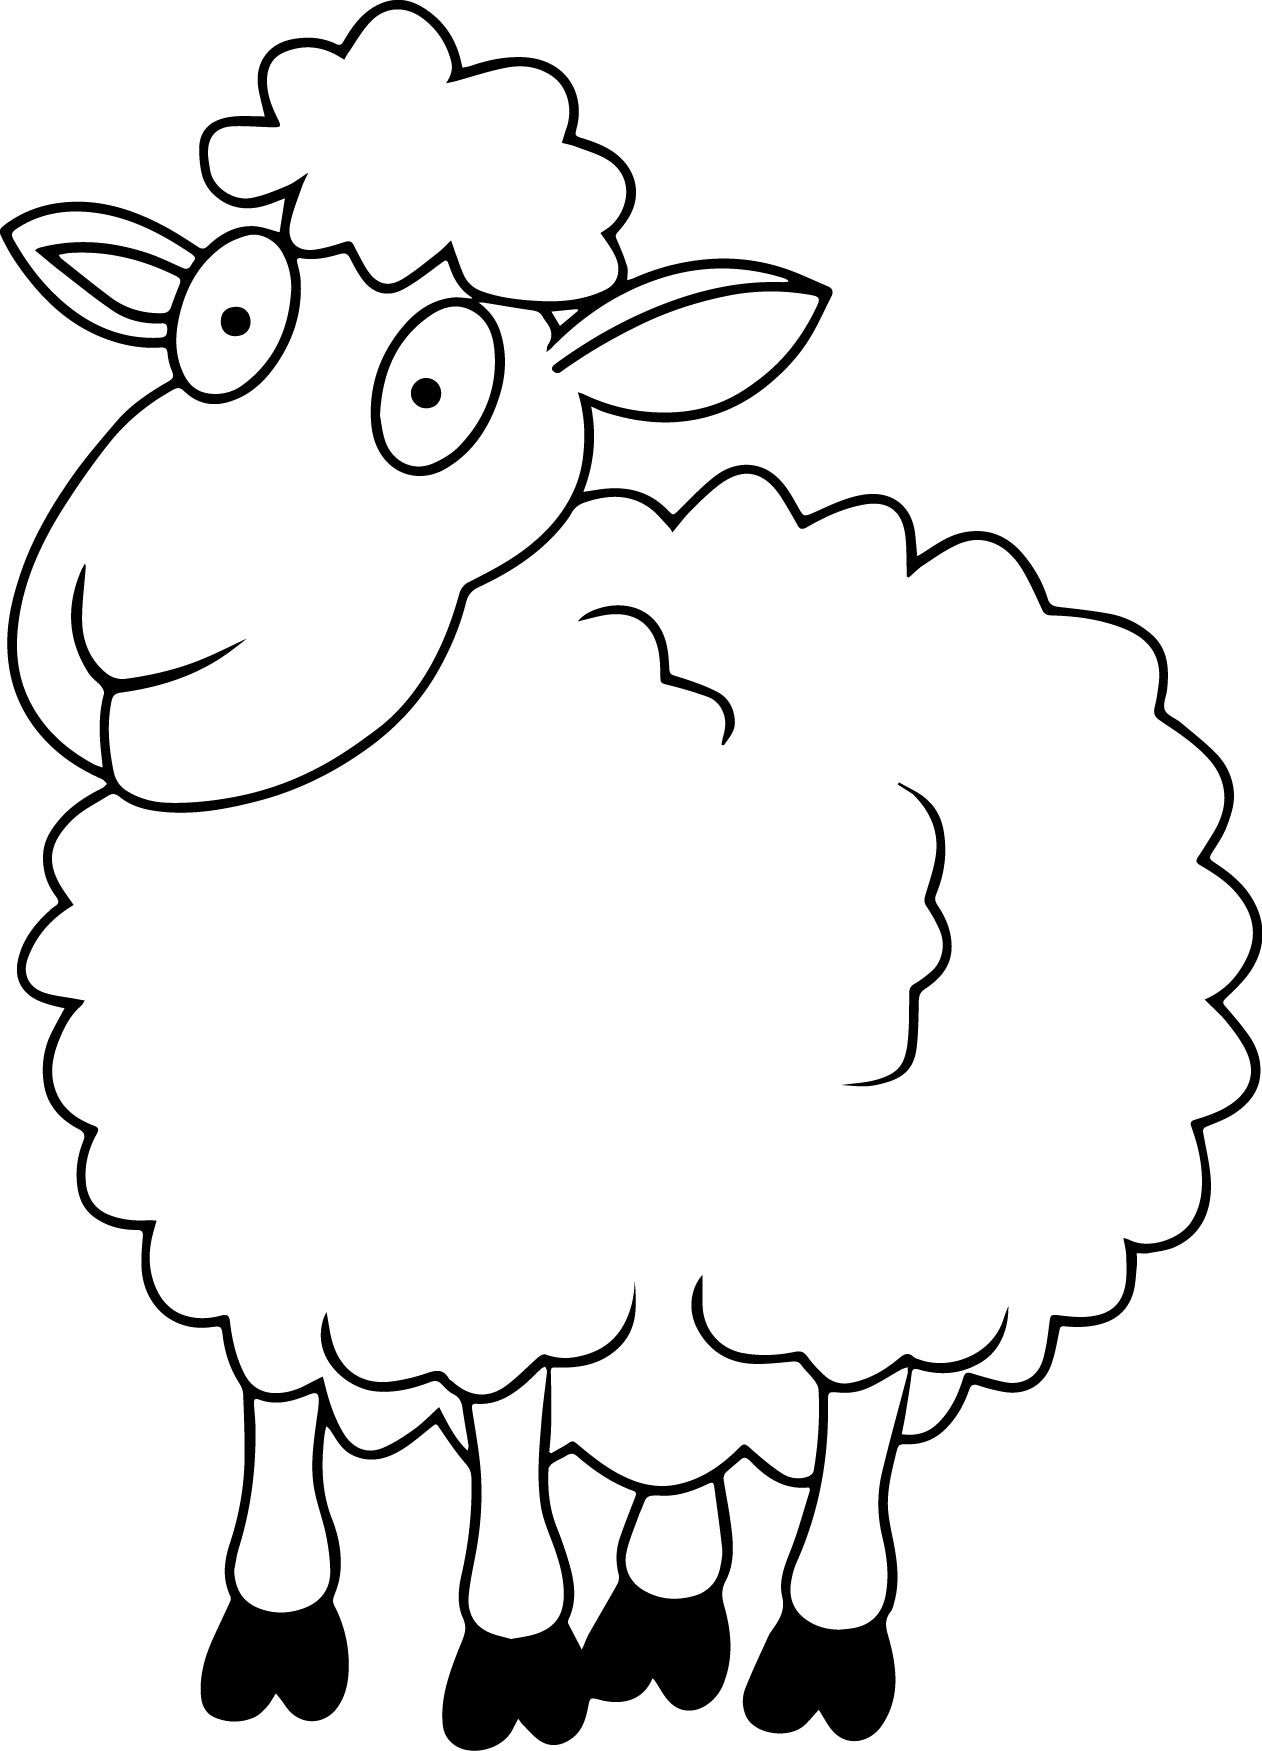 sheep coloring page druntk